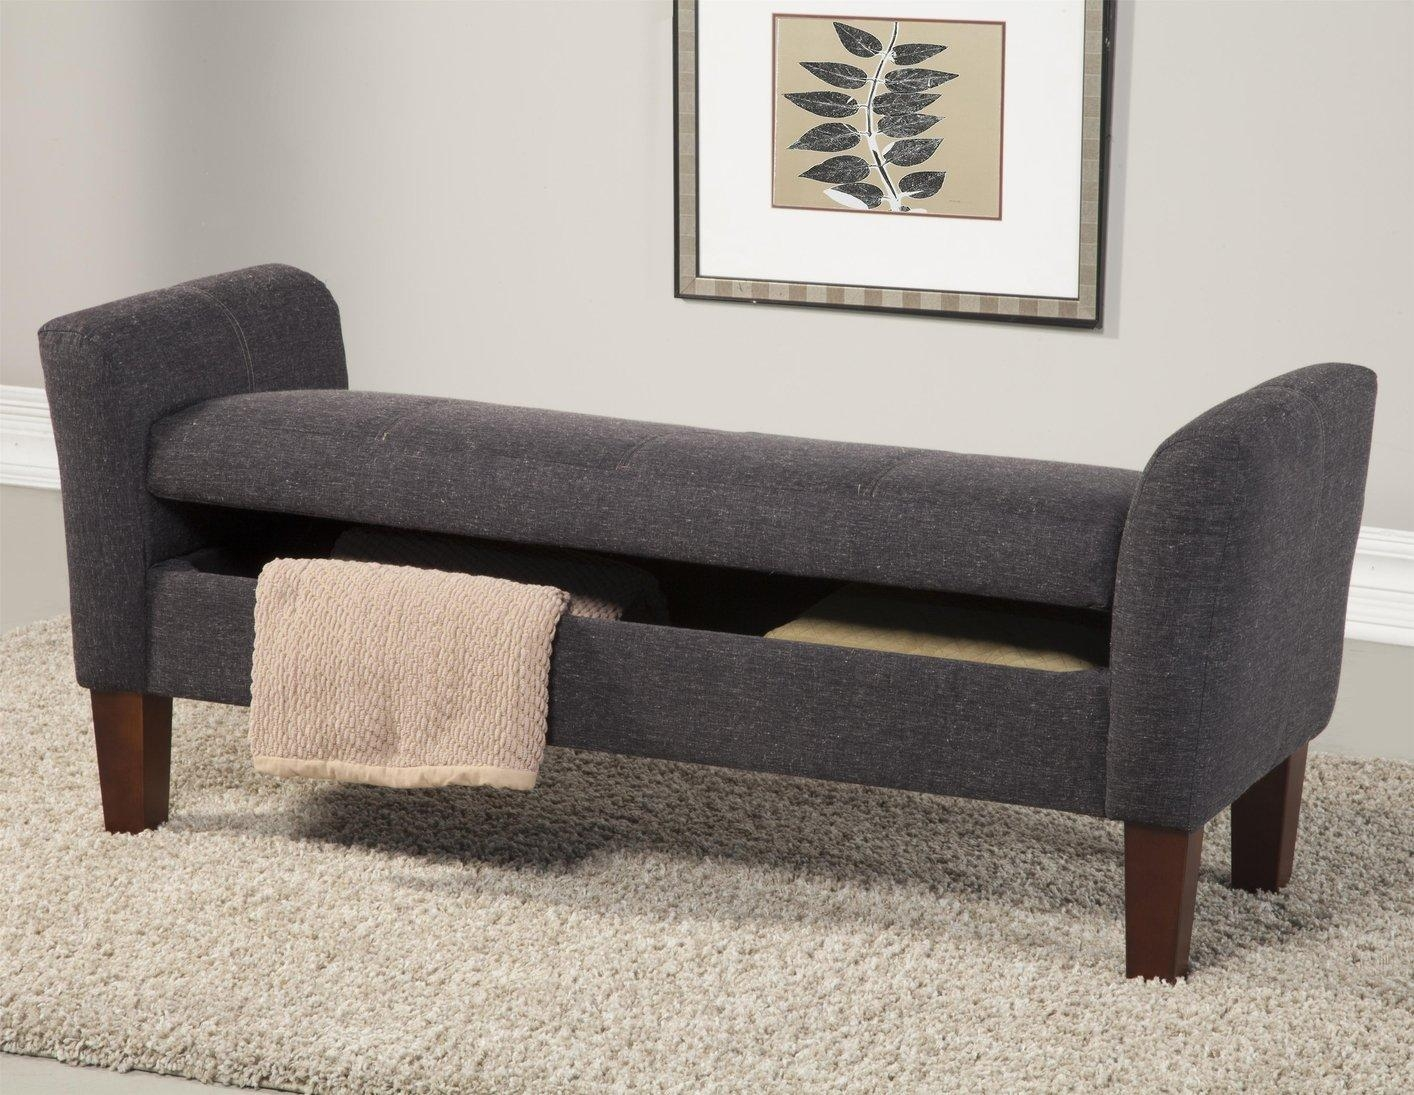 Bedroom Sofa Bench | Sofa Gallery | Kengire With Regard To Bedroom Bench Sofas (View 2 of 20)